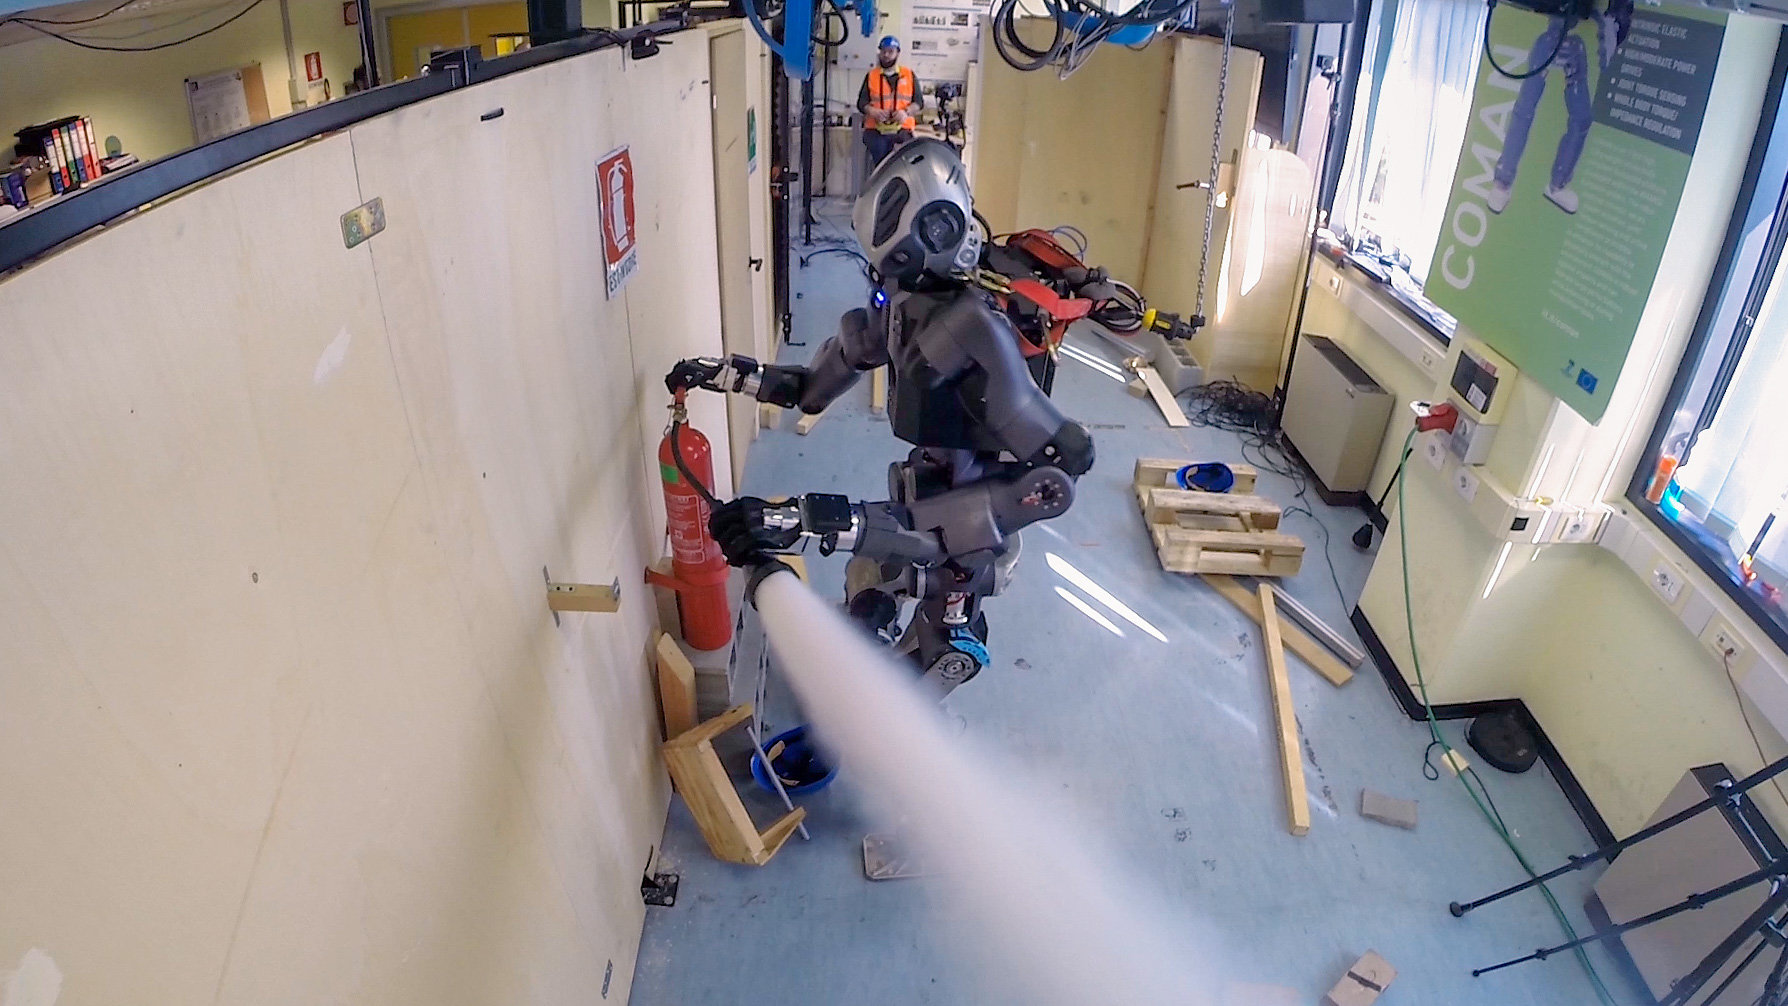 Humanoid Robot Supports Emergency Response Teams